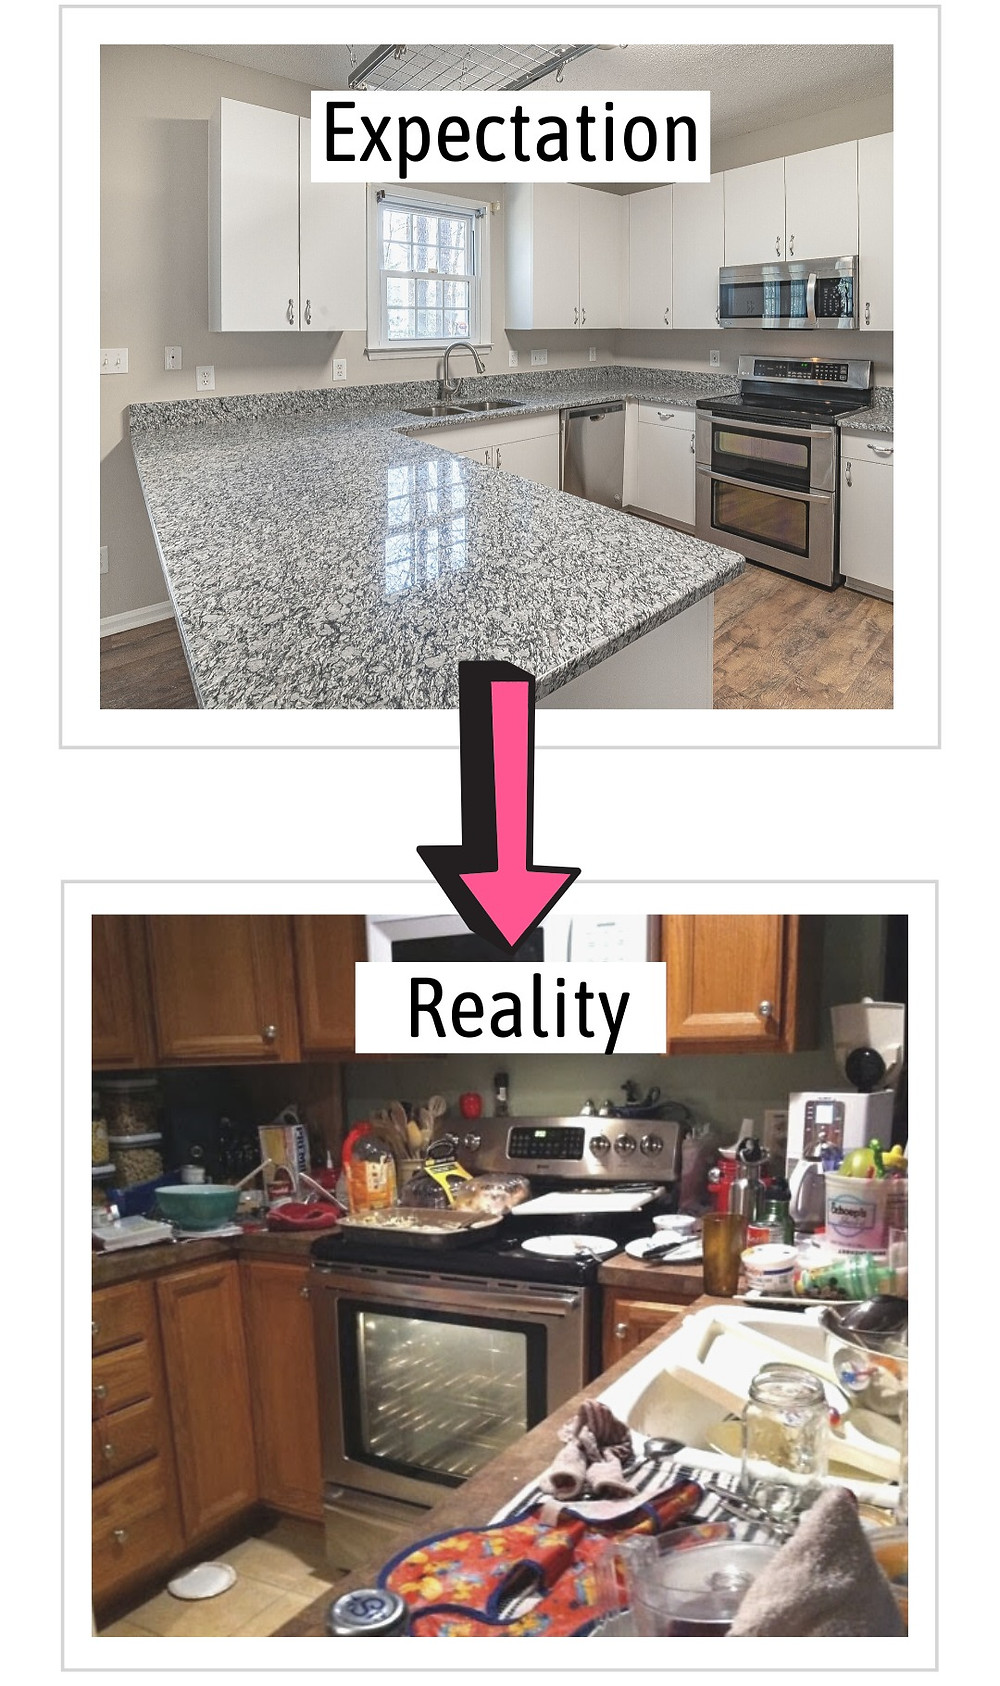 expectation versus reality rent with strangers dirty kitchen countertop floor messy rubbish leftovers all over the table